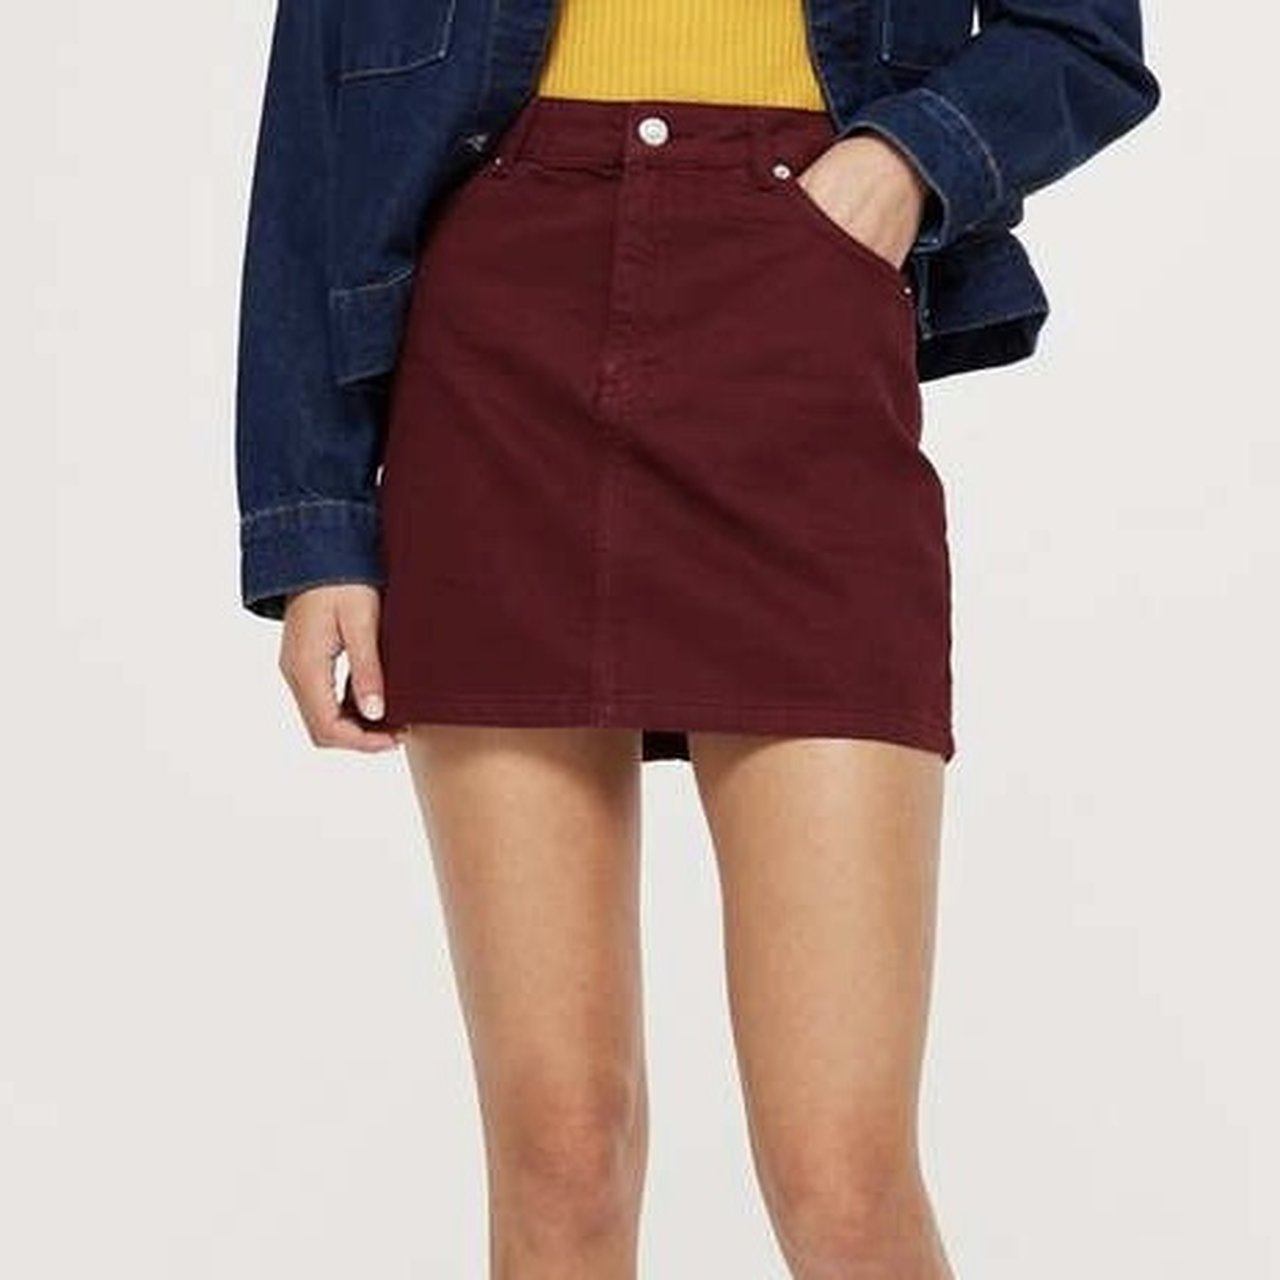 9fa5f9edaecd REDCUCED Topshop burgundy denim skirt. Only worn once so - Depop